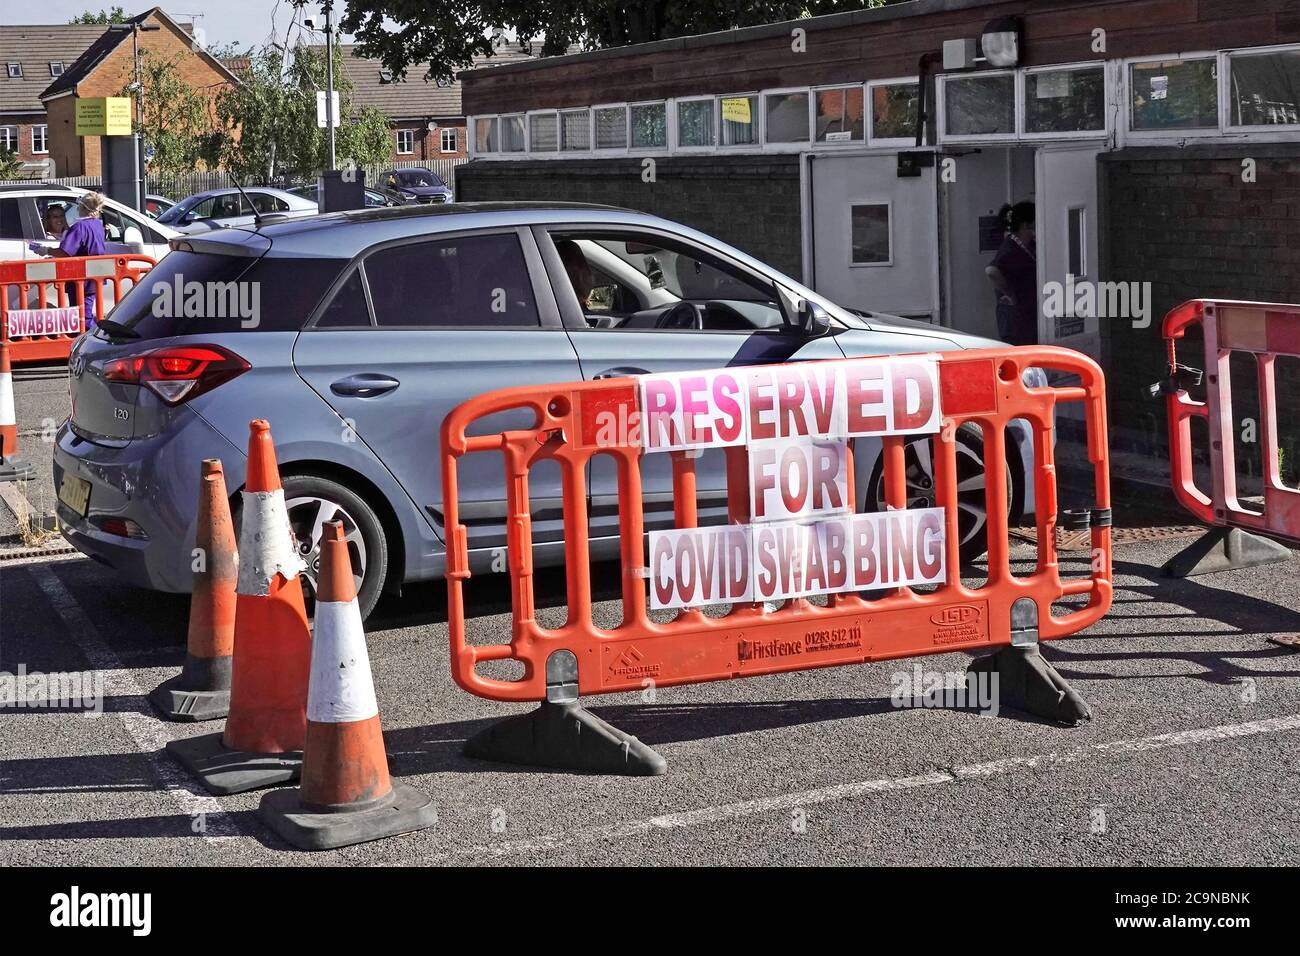 Orsett NHS Hospital makeshift car parking spaces reserved for Covid 19 drive in patients for swab test in car park for coronavirus Essex England UK Stock Photo